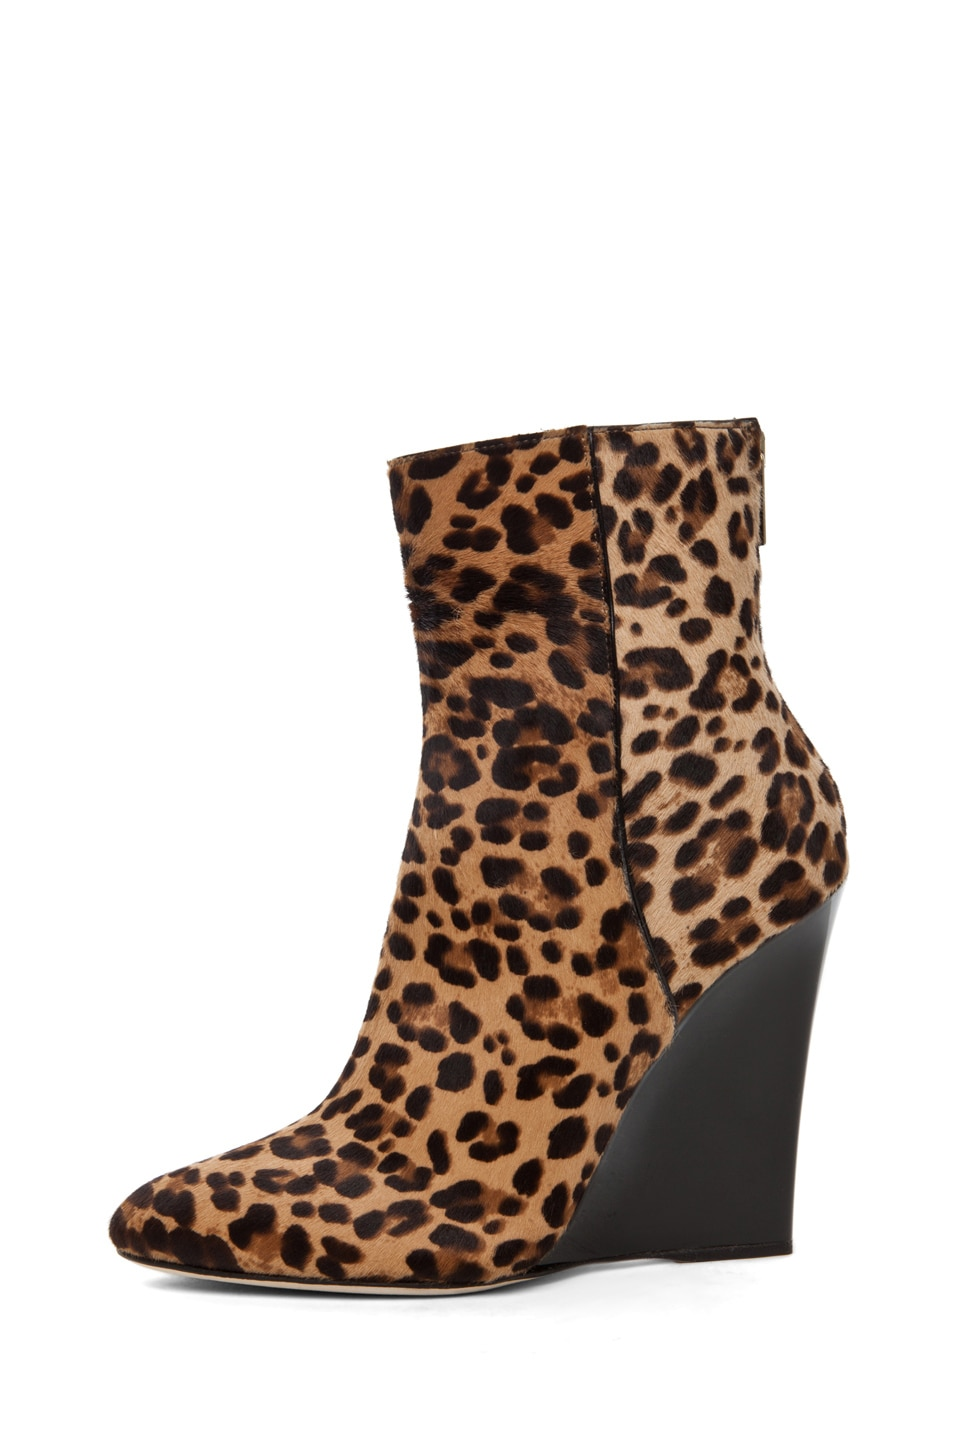 Image 1 of Jimmy Choo Mercury Wedge Bootie in Leopard Print